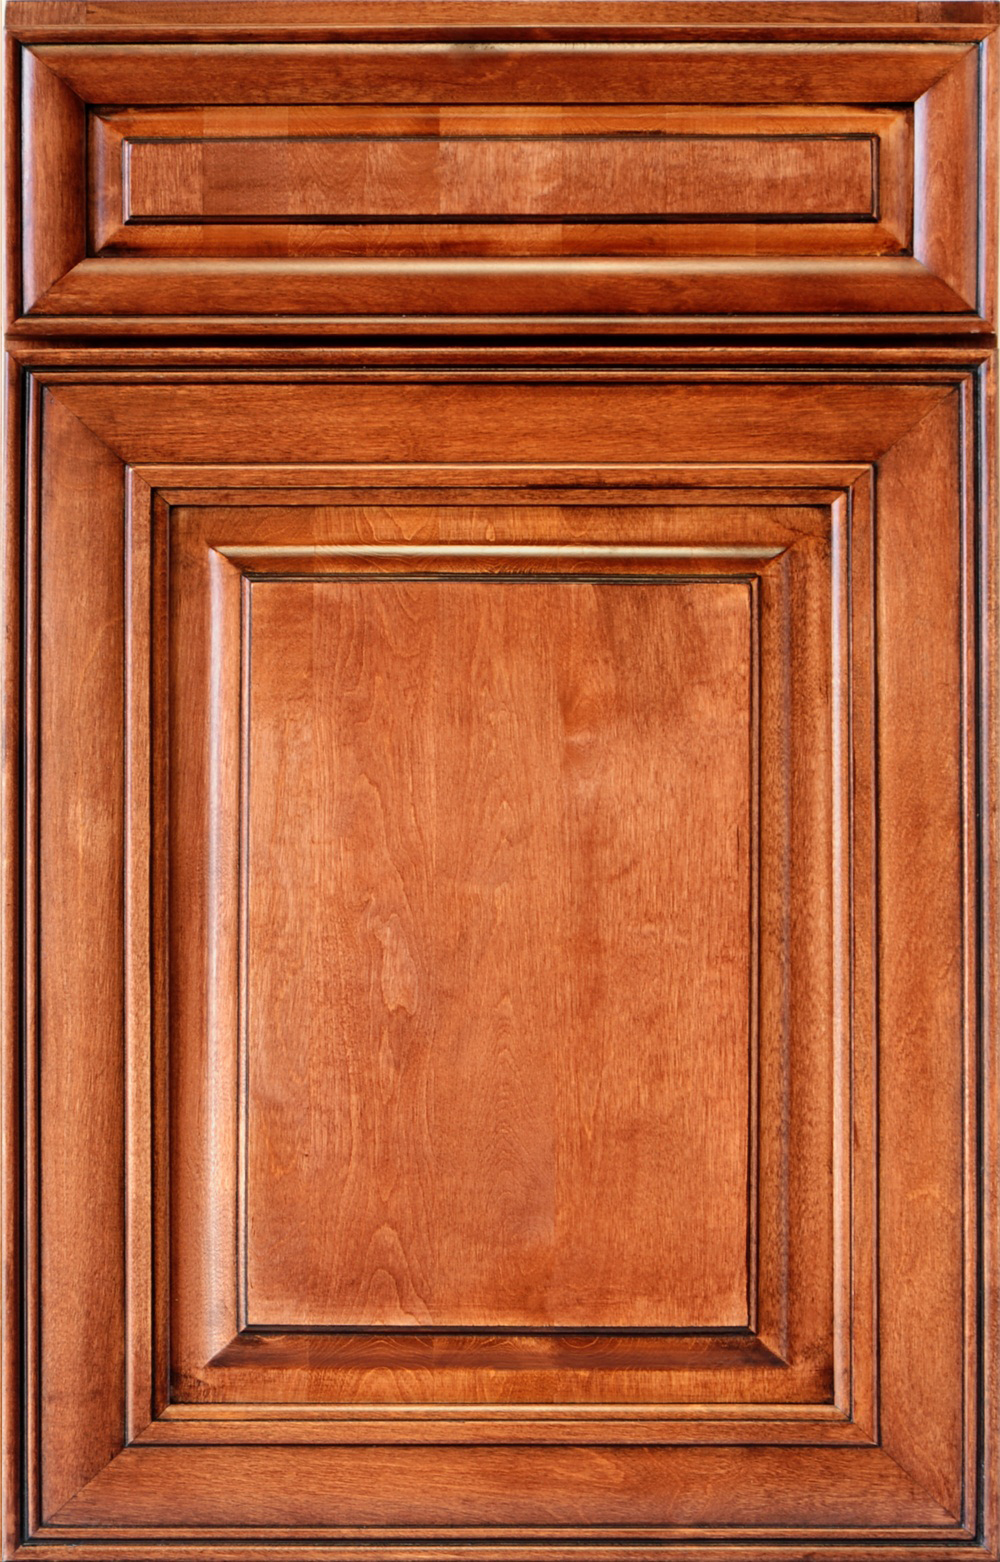 Wholesale discount kitchen cabinets carlsbad northridge for Chocolate maple glaze kitchen cabinets